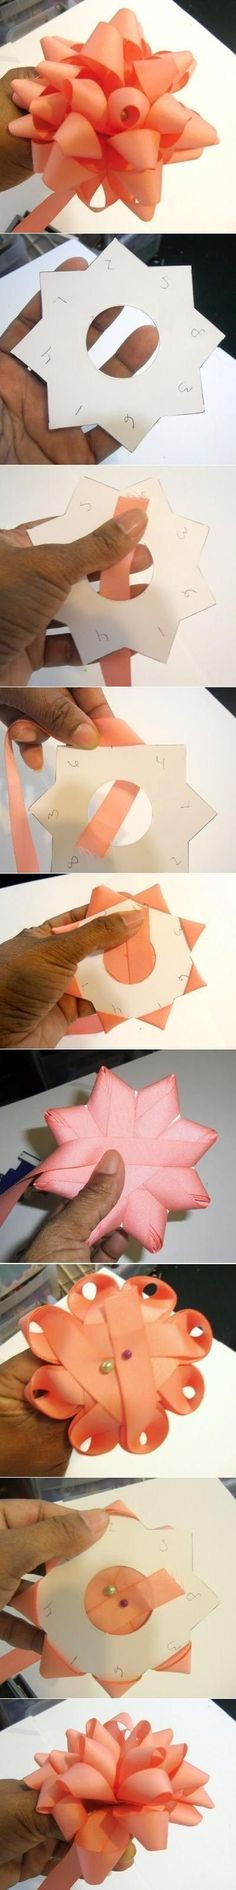 DIY Perfect Ribbon Bow